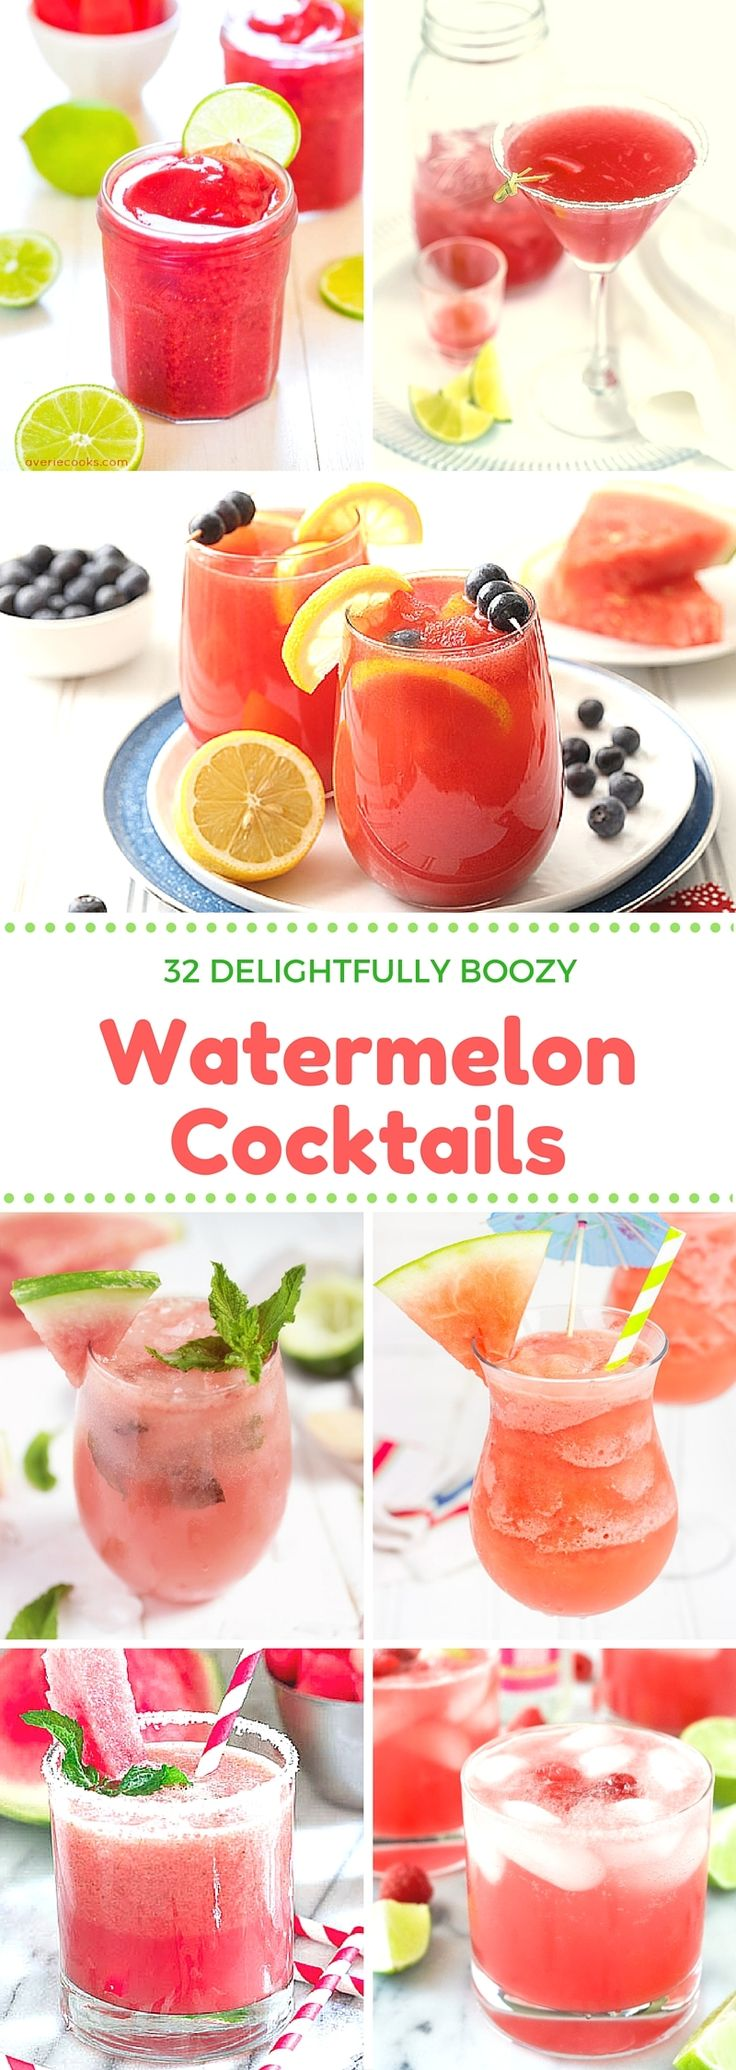 Looking for a way to chill out this summer, here's a roundup of more than 30 watermelon cocktail recipes!